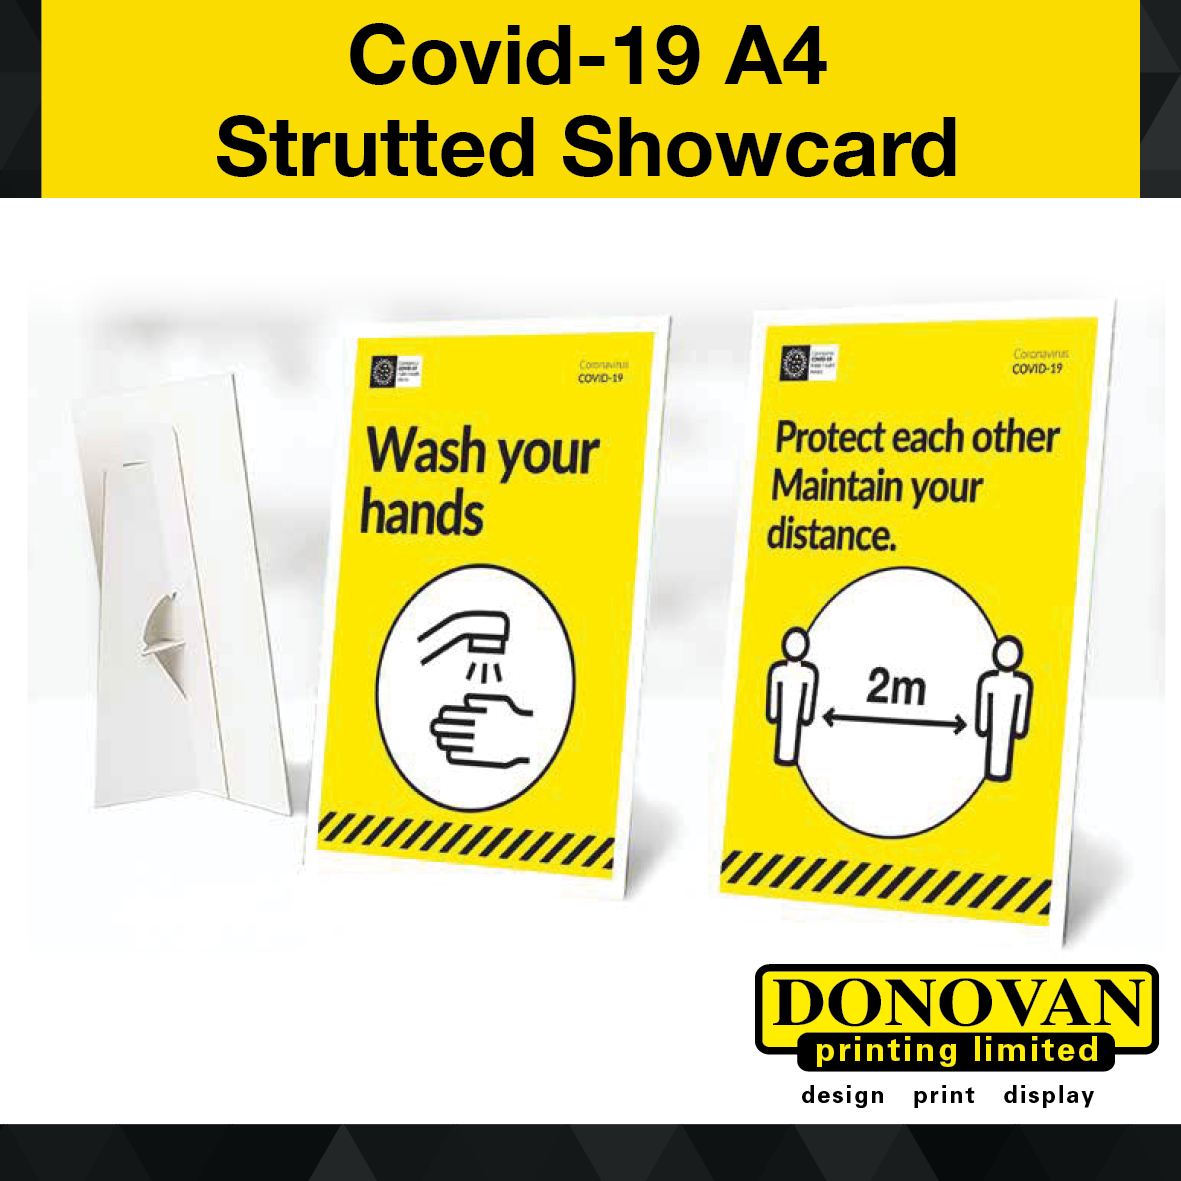 Covid A4 Strutted Showcard Image